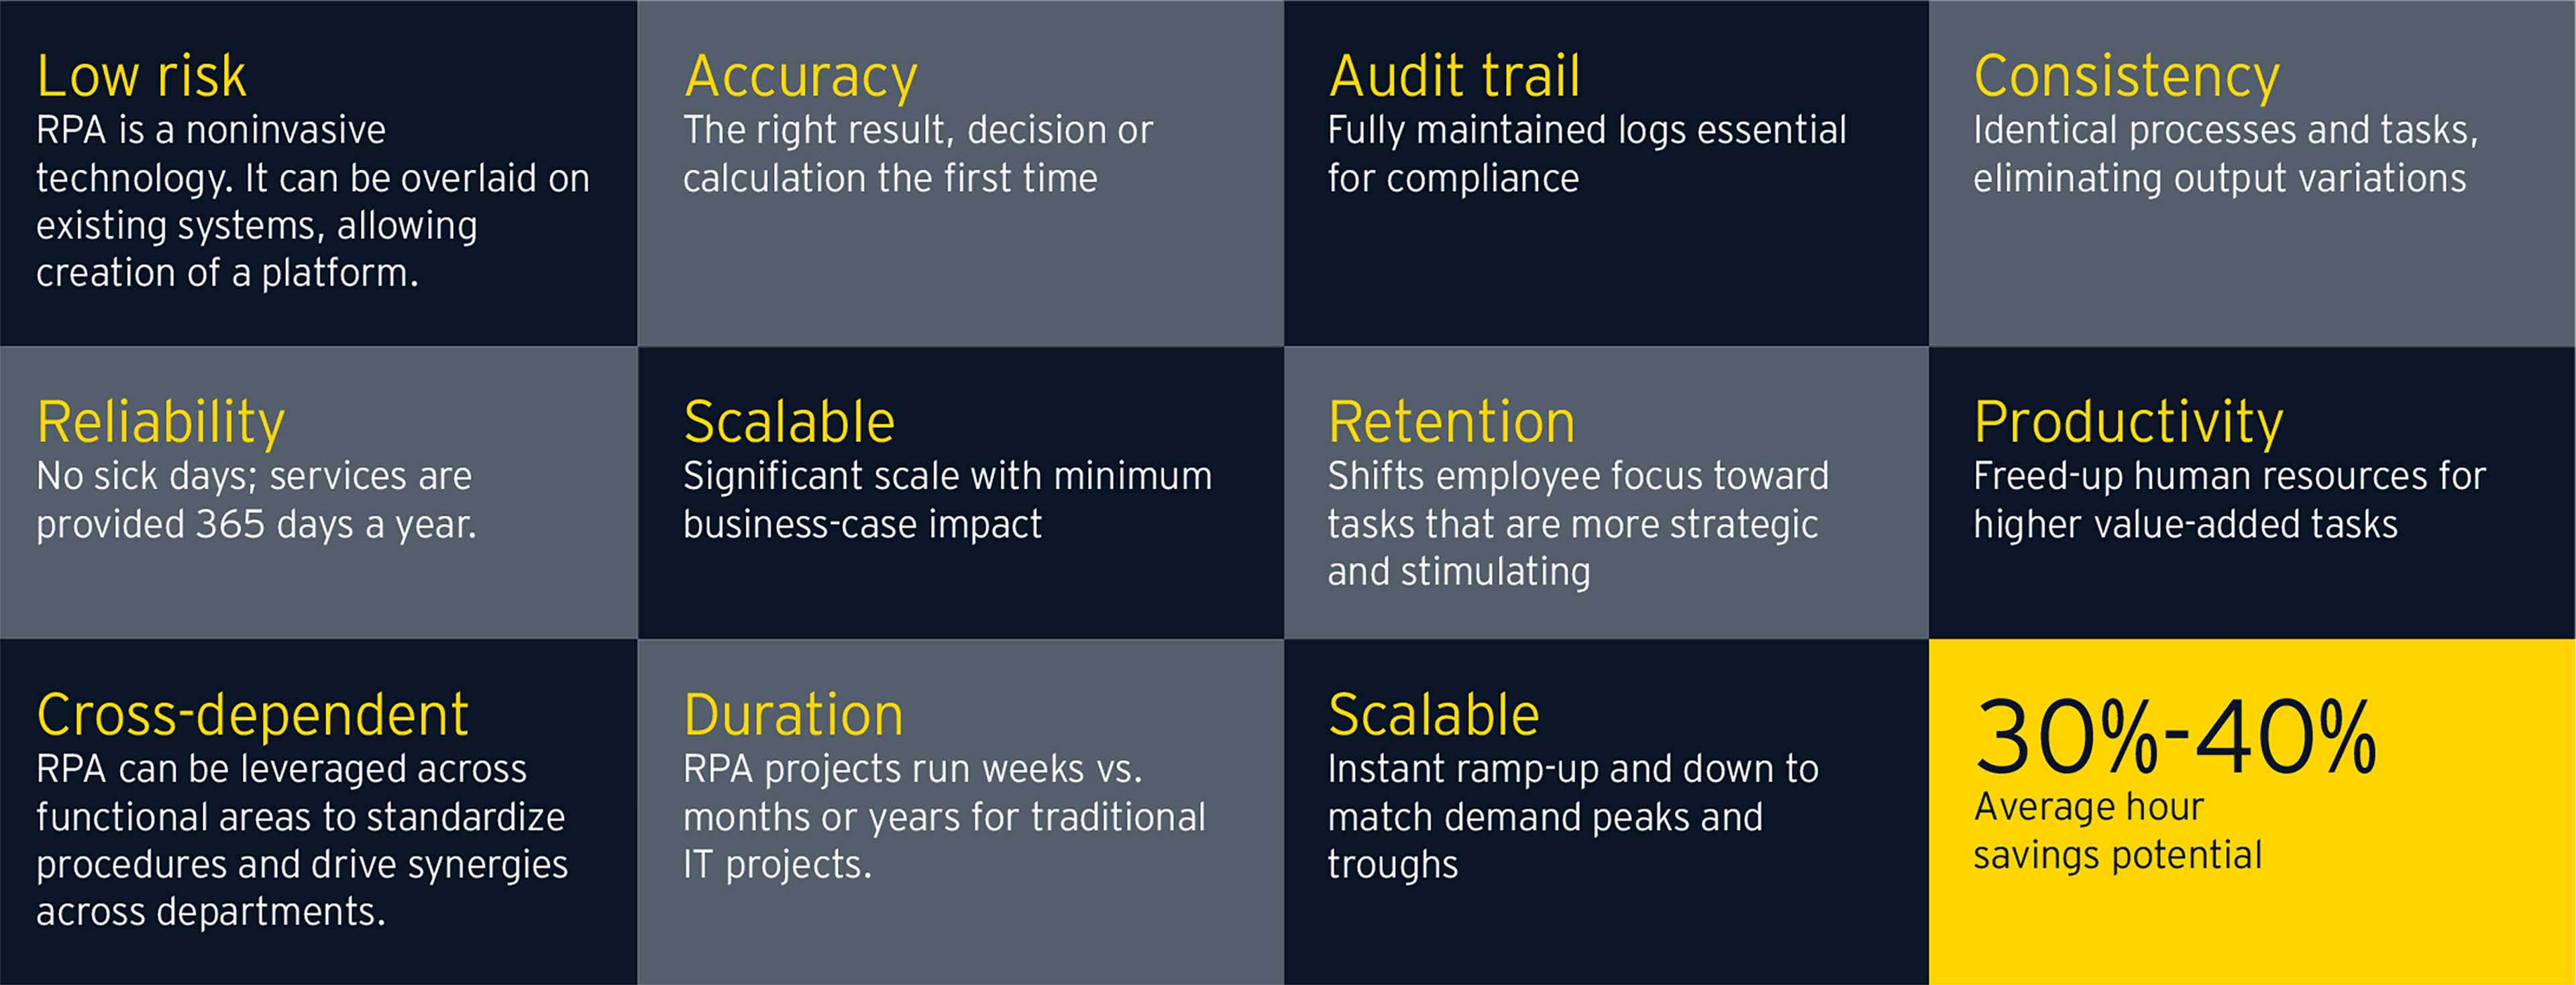 How Is Intelligent Automation Disrupting The Public Sector